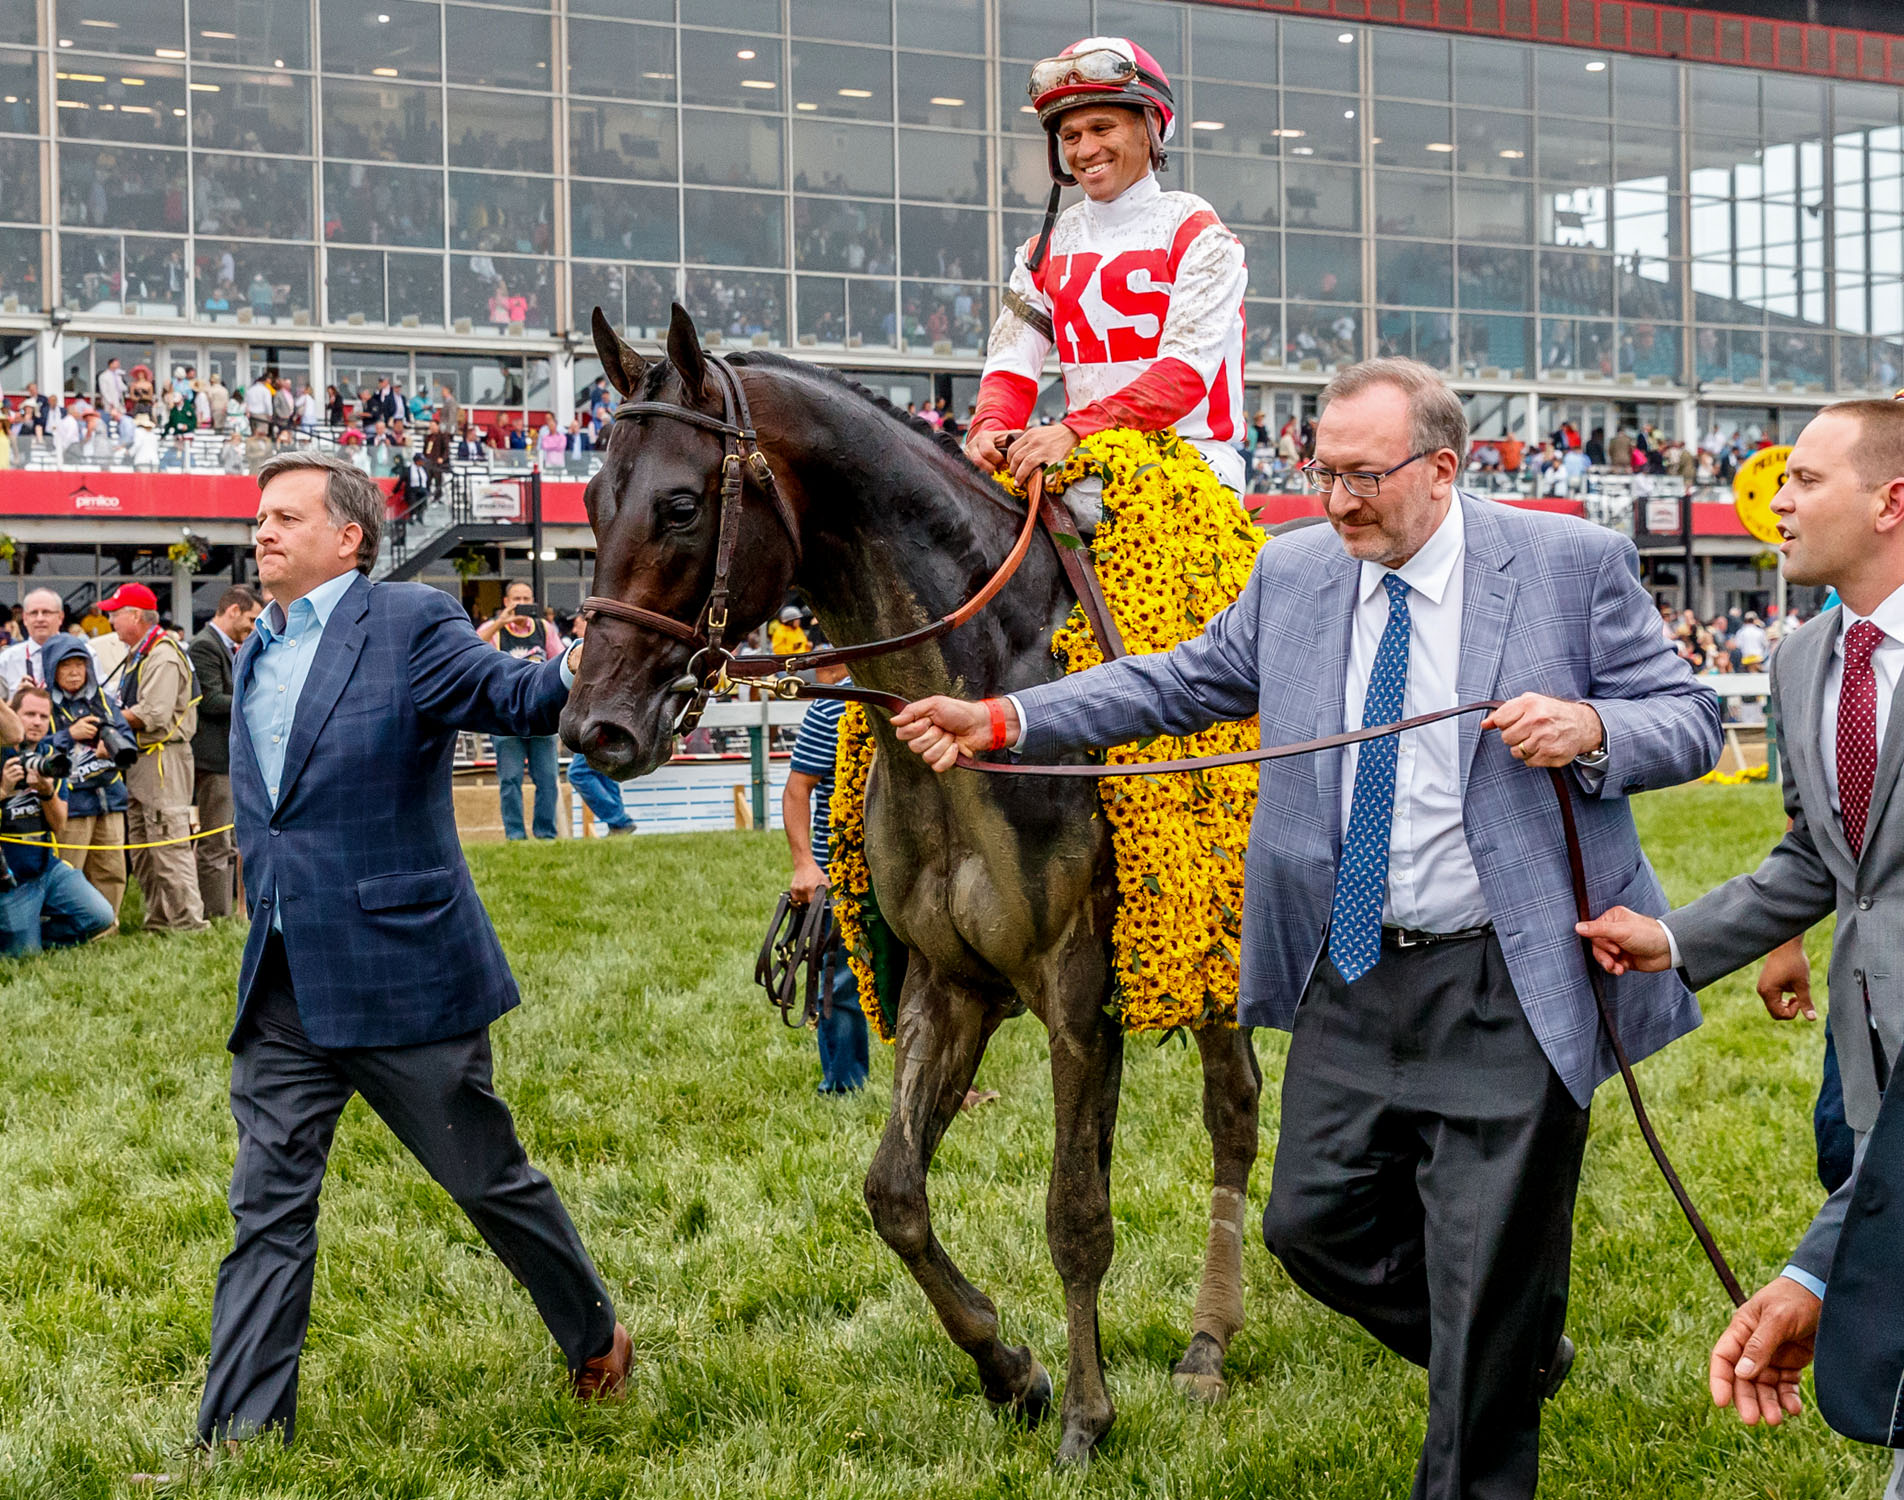 Cloud Computing owners, William Lawrence (left) and Seth Klarman (right) with trainer Chad Brown (far right)